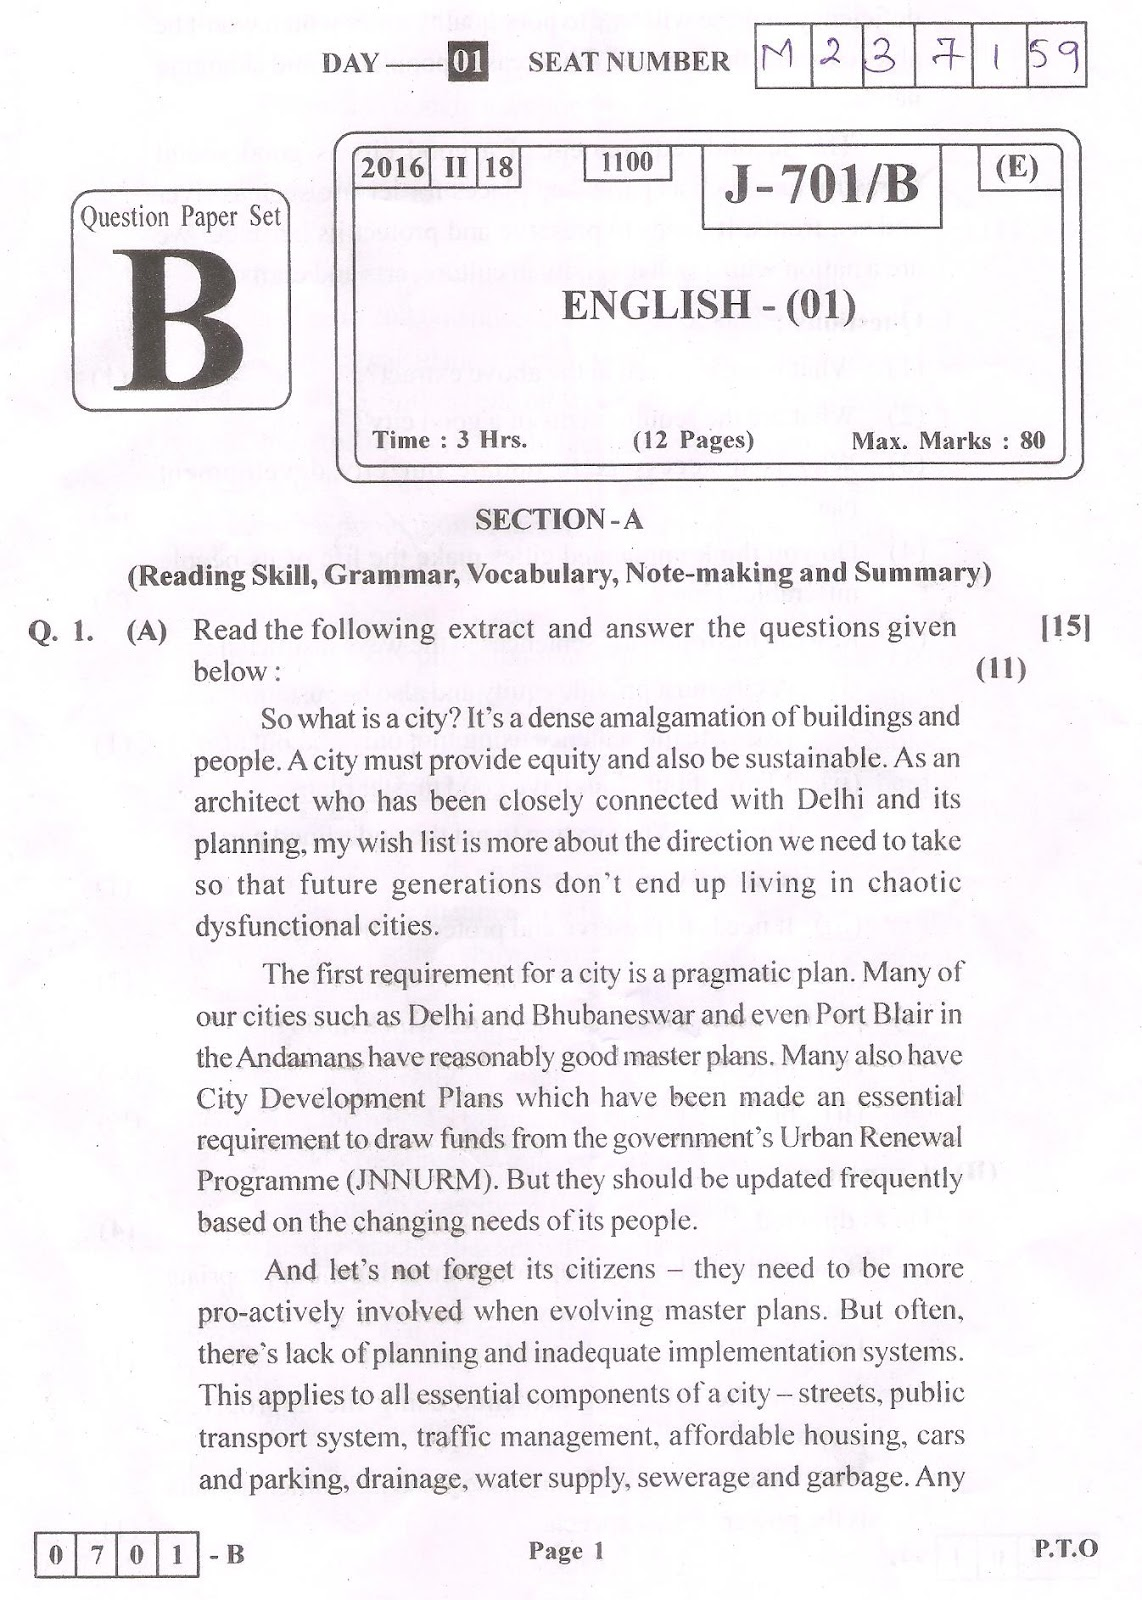 HSC English Board Question Paper (March 2016) Set B